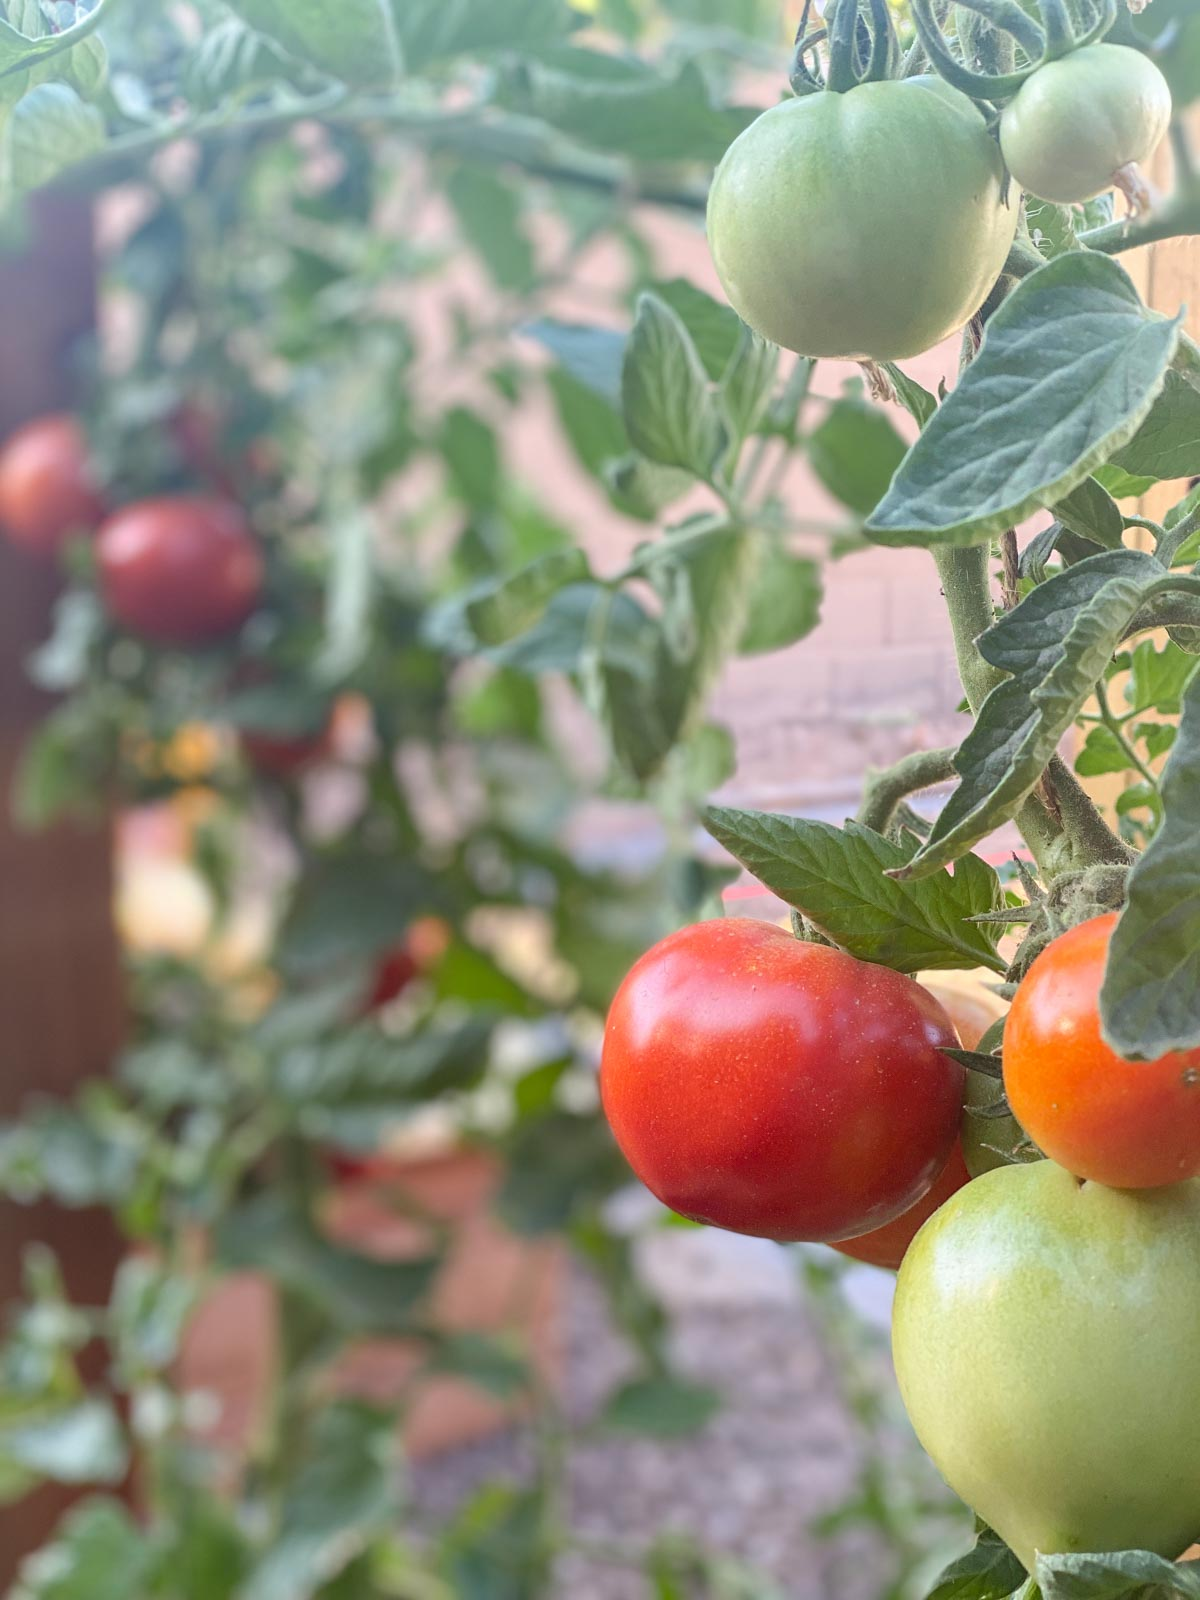 Close up shot of tomatoes growing on a vine.